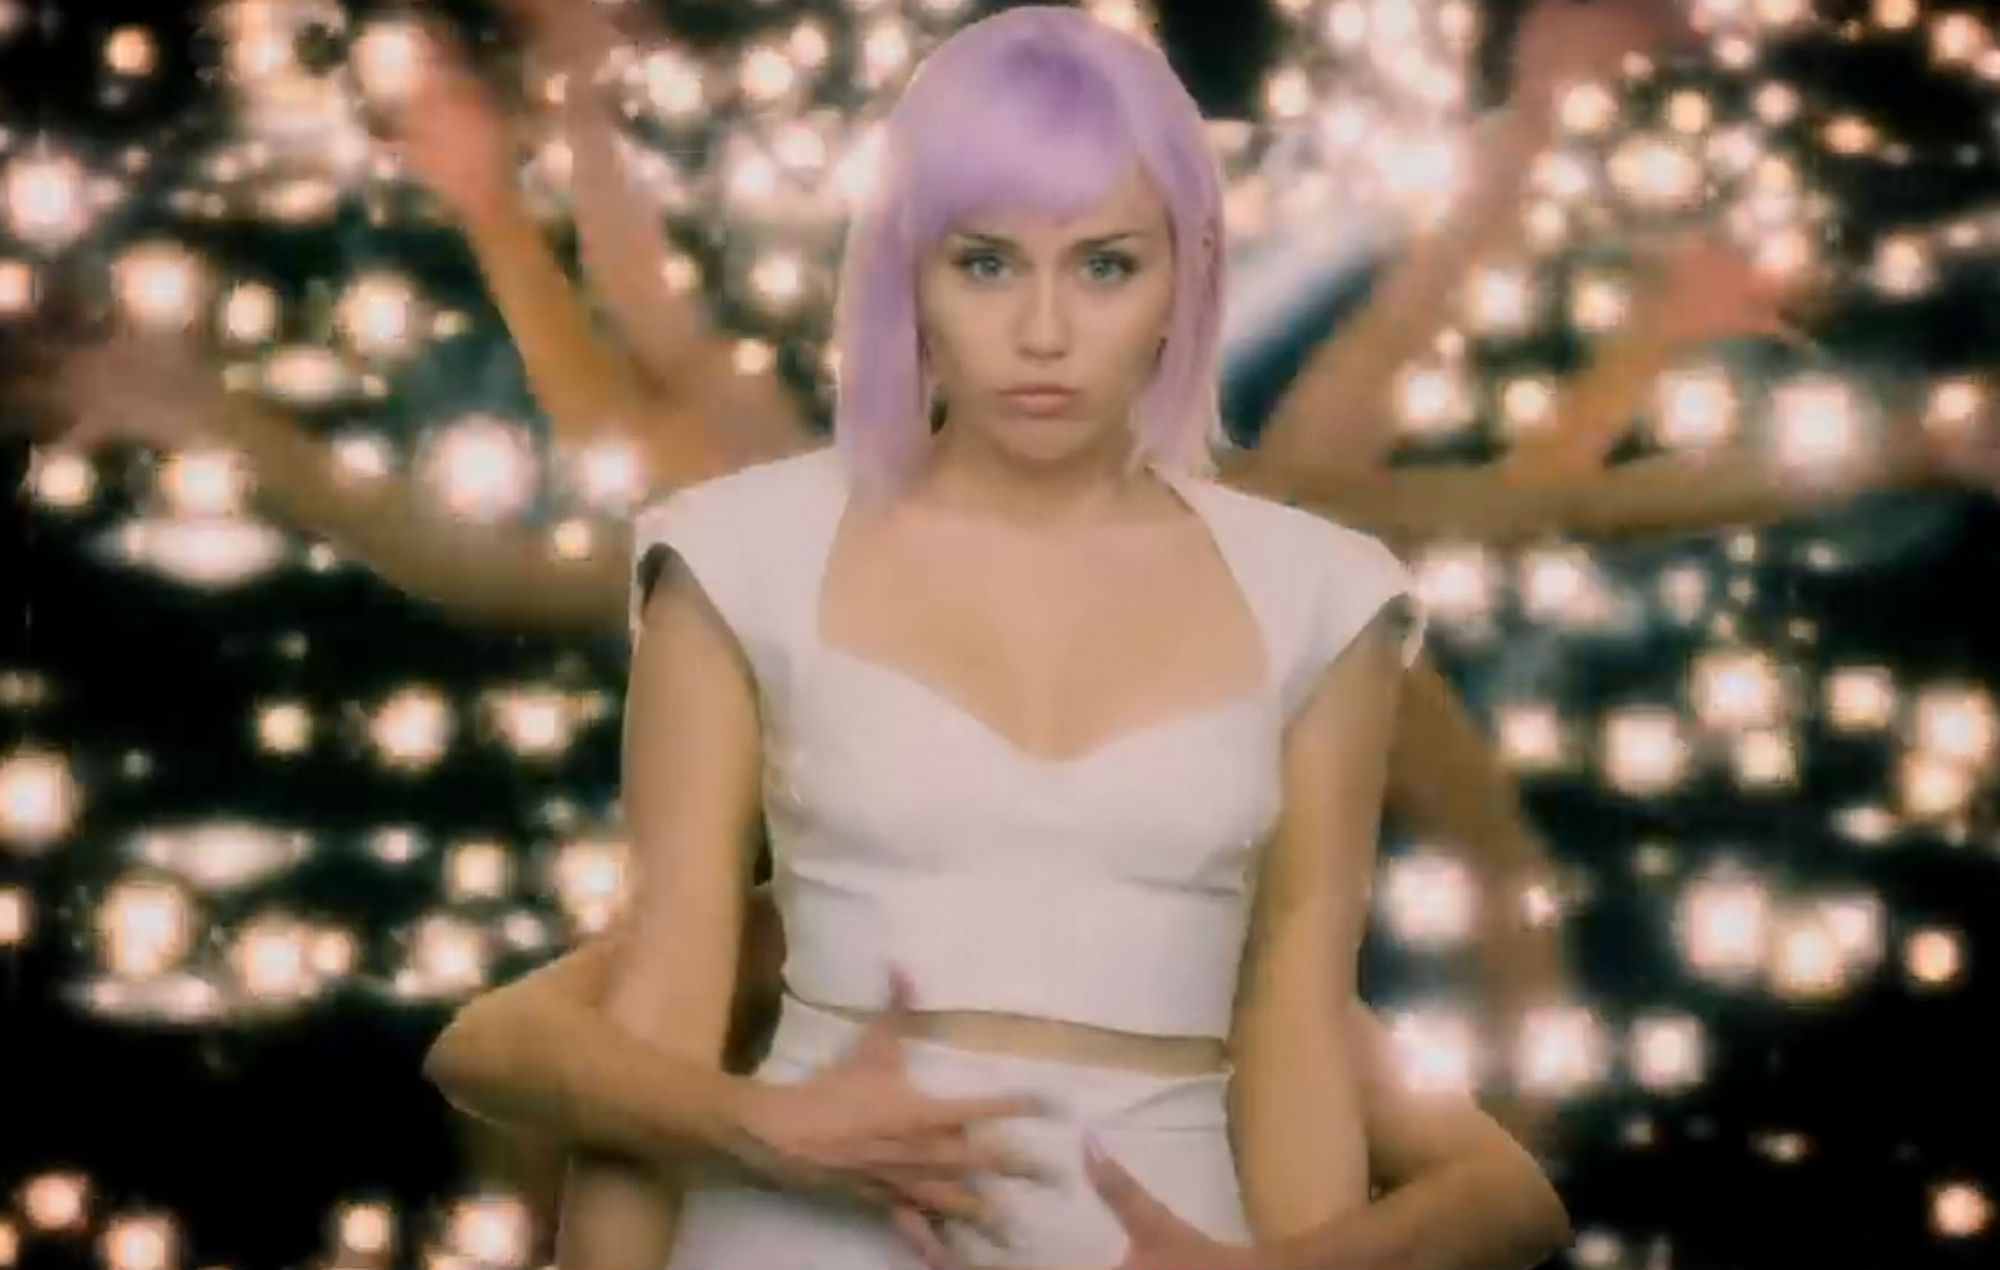 Miley Cyrus Deserved Better - what the 'Black Mirror' backlash says